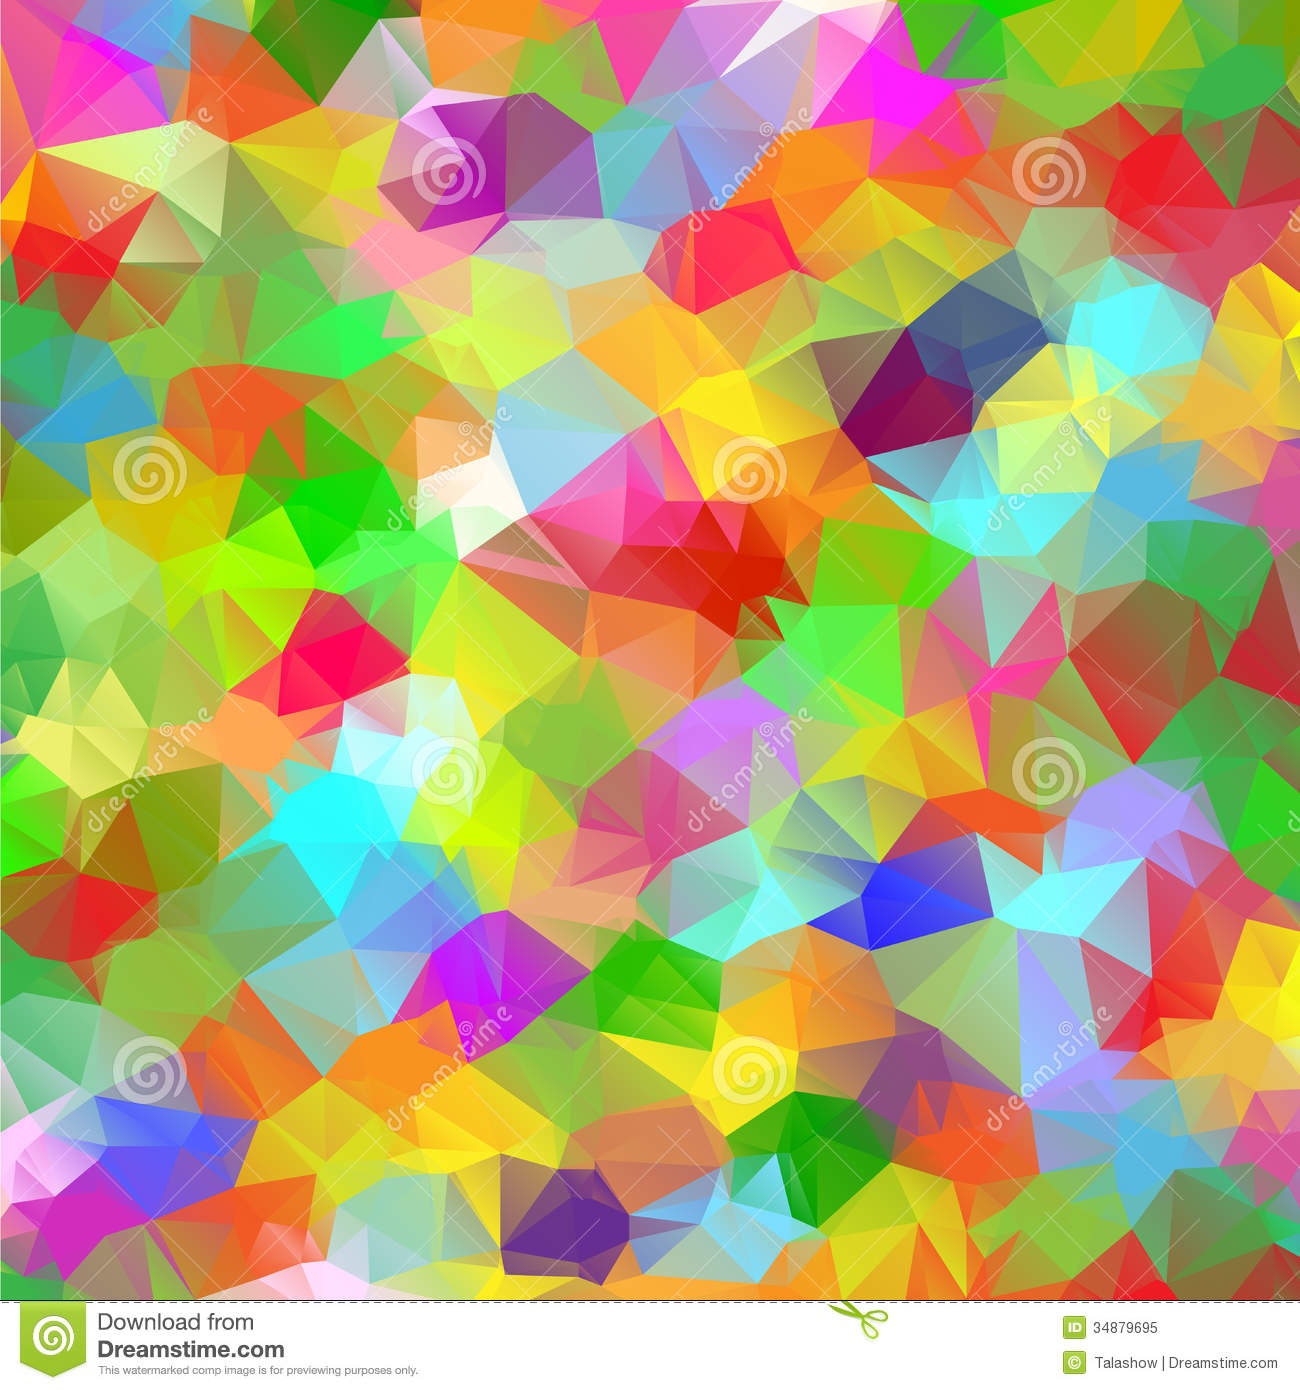 abstract geometric colorful background - photo #18